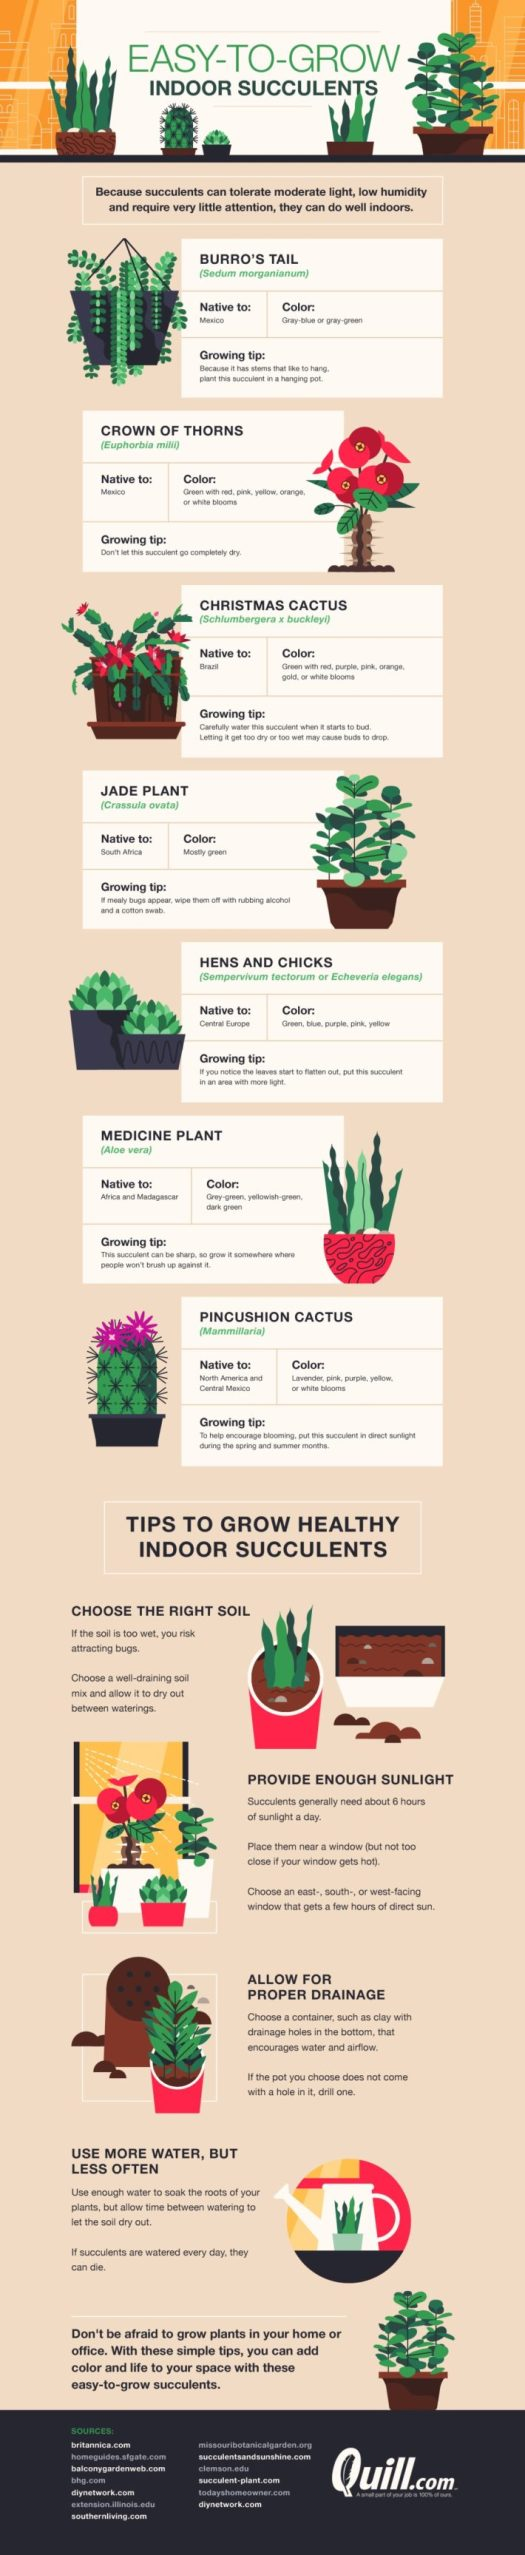 Easy-to-grow indoor succulents